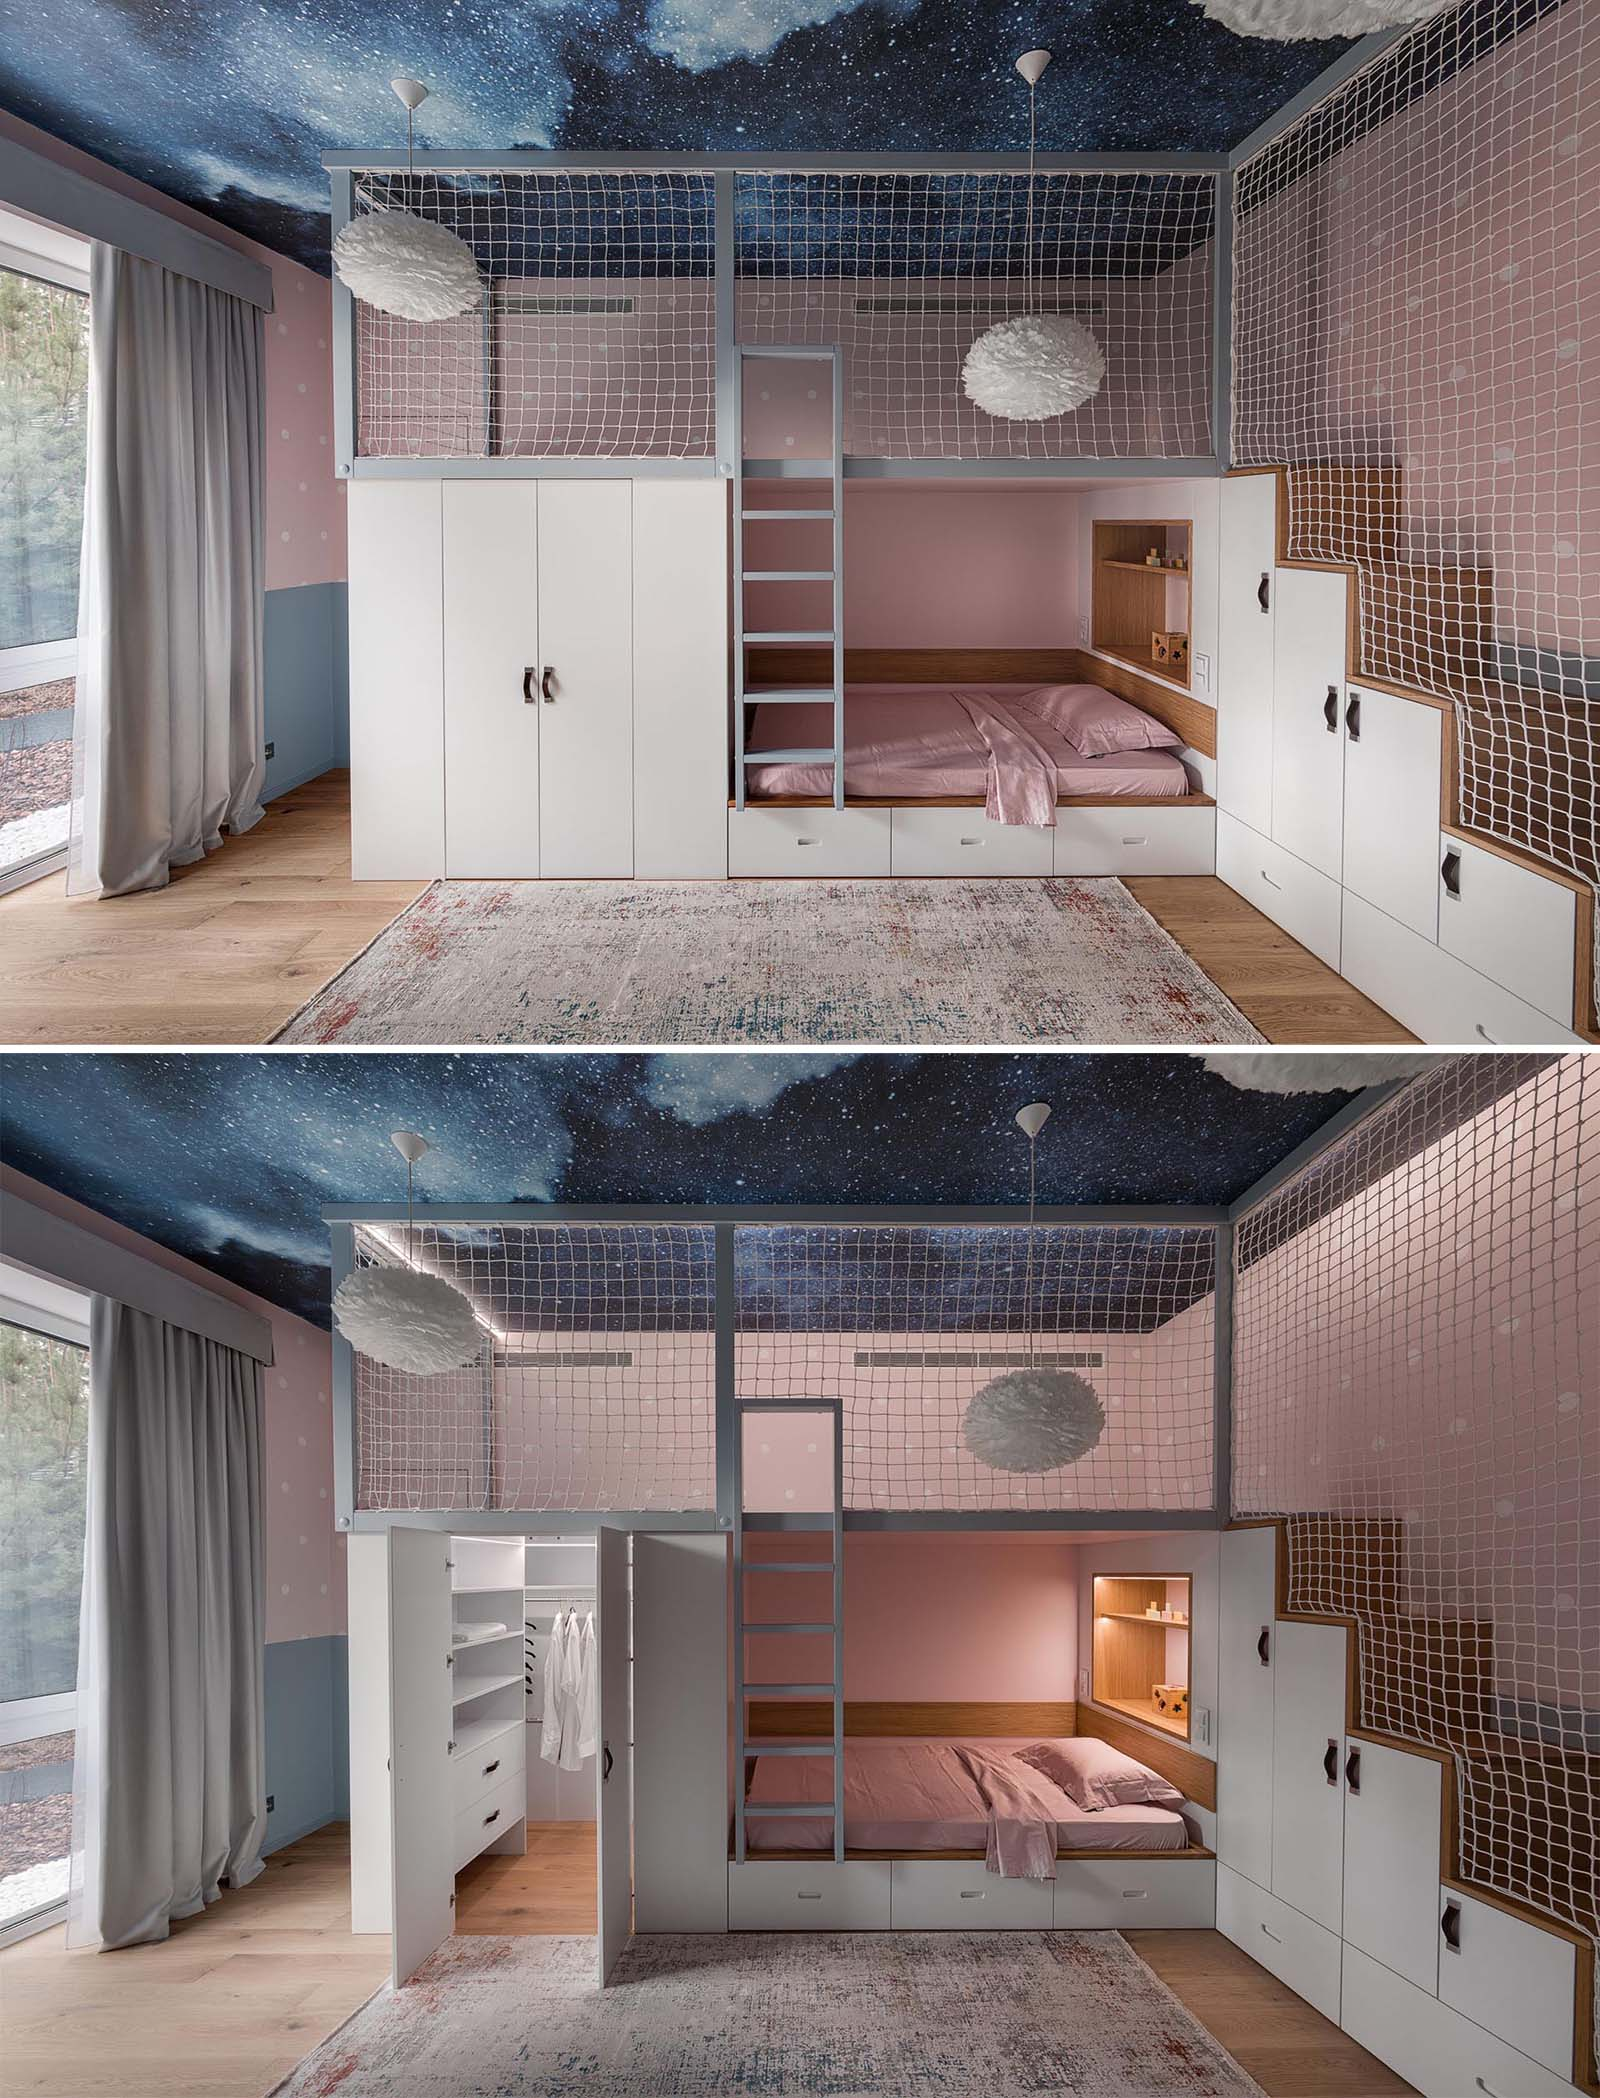 A modern kids bedroom with a lofted play space, a closet, a bed with storage underneath, and a built-in wood-lined shelf with lighting.